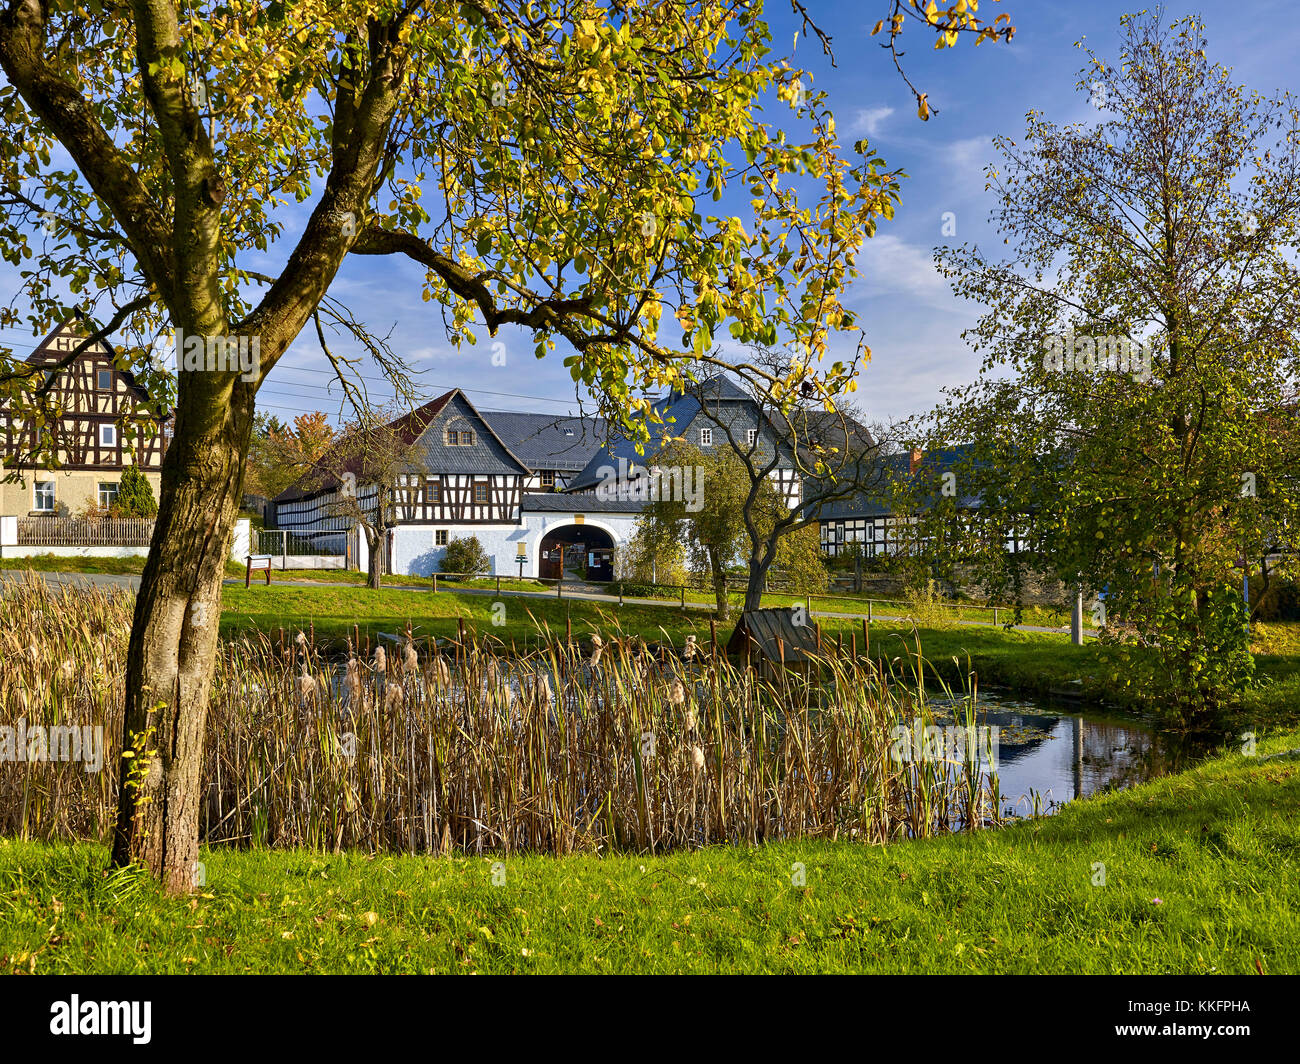 Nitschareuth, historic village green with four-sided courtyards near Greiz, Thuringia, Germany - Stock Image